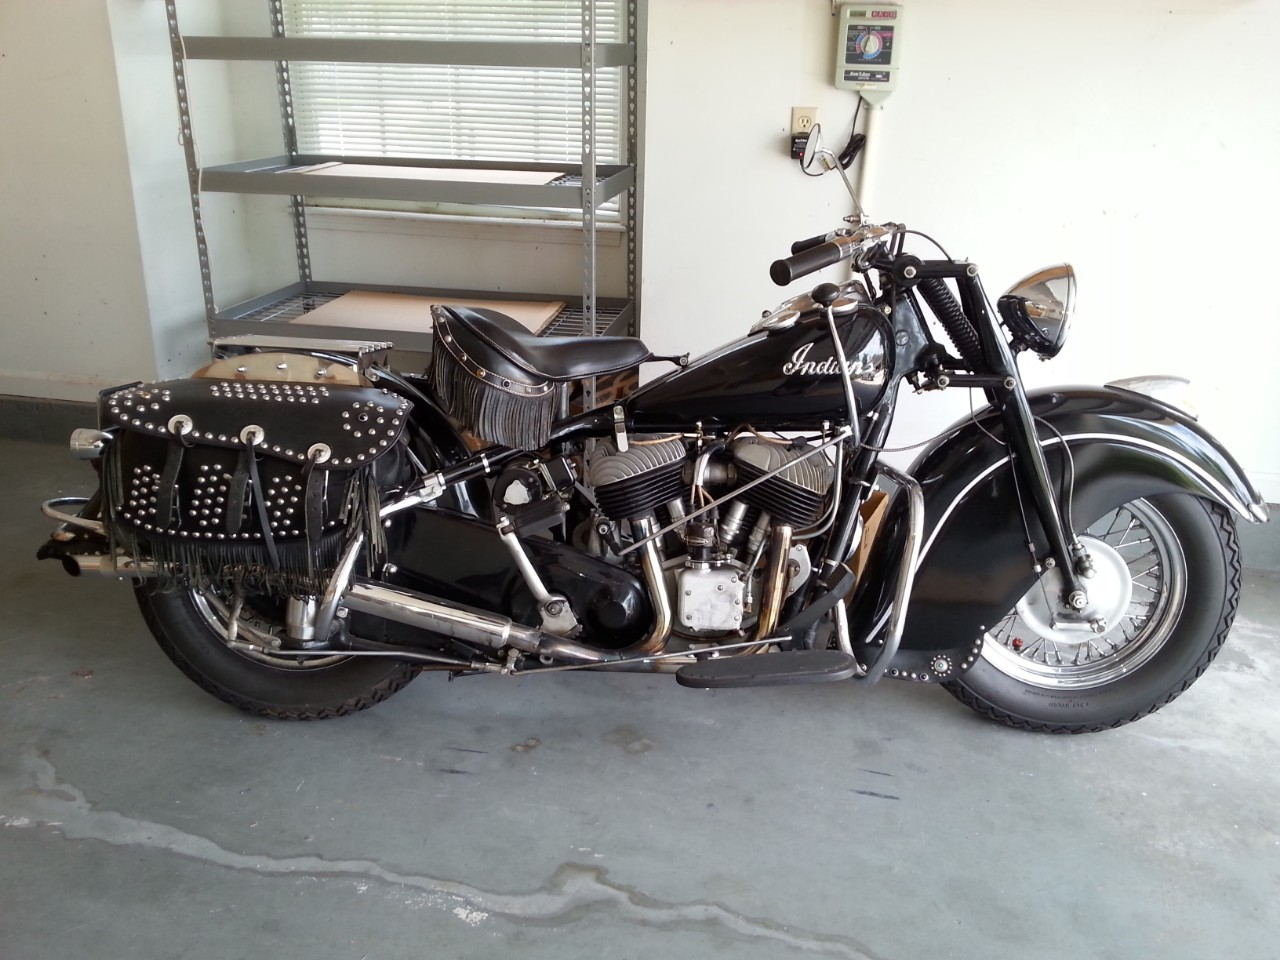 FL - Classic / Vintage Motorcycles For Sale - Cycle Trader